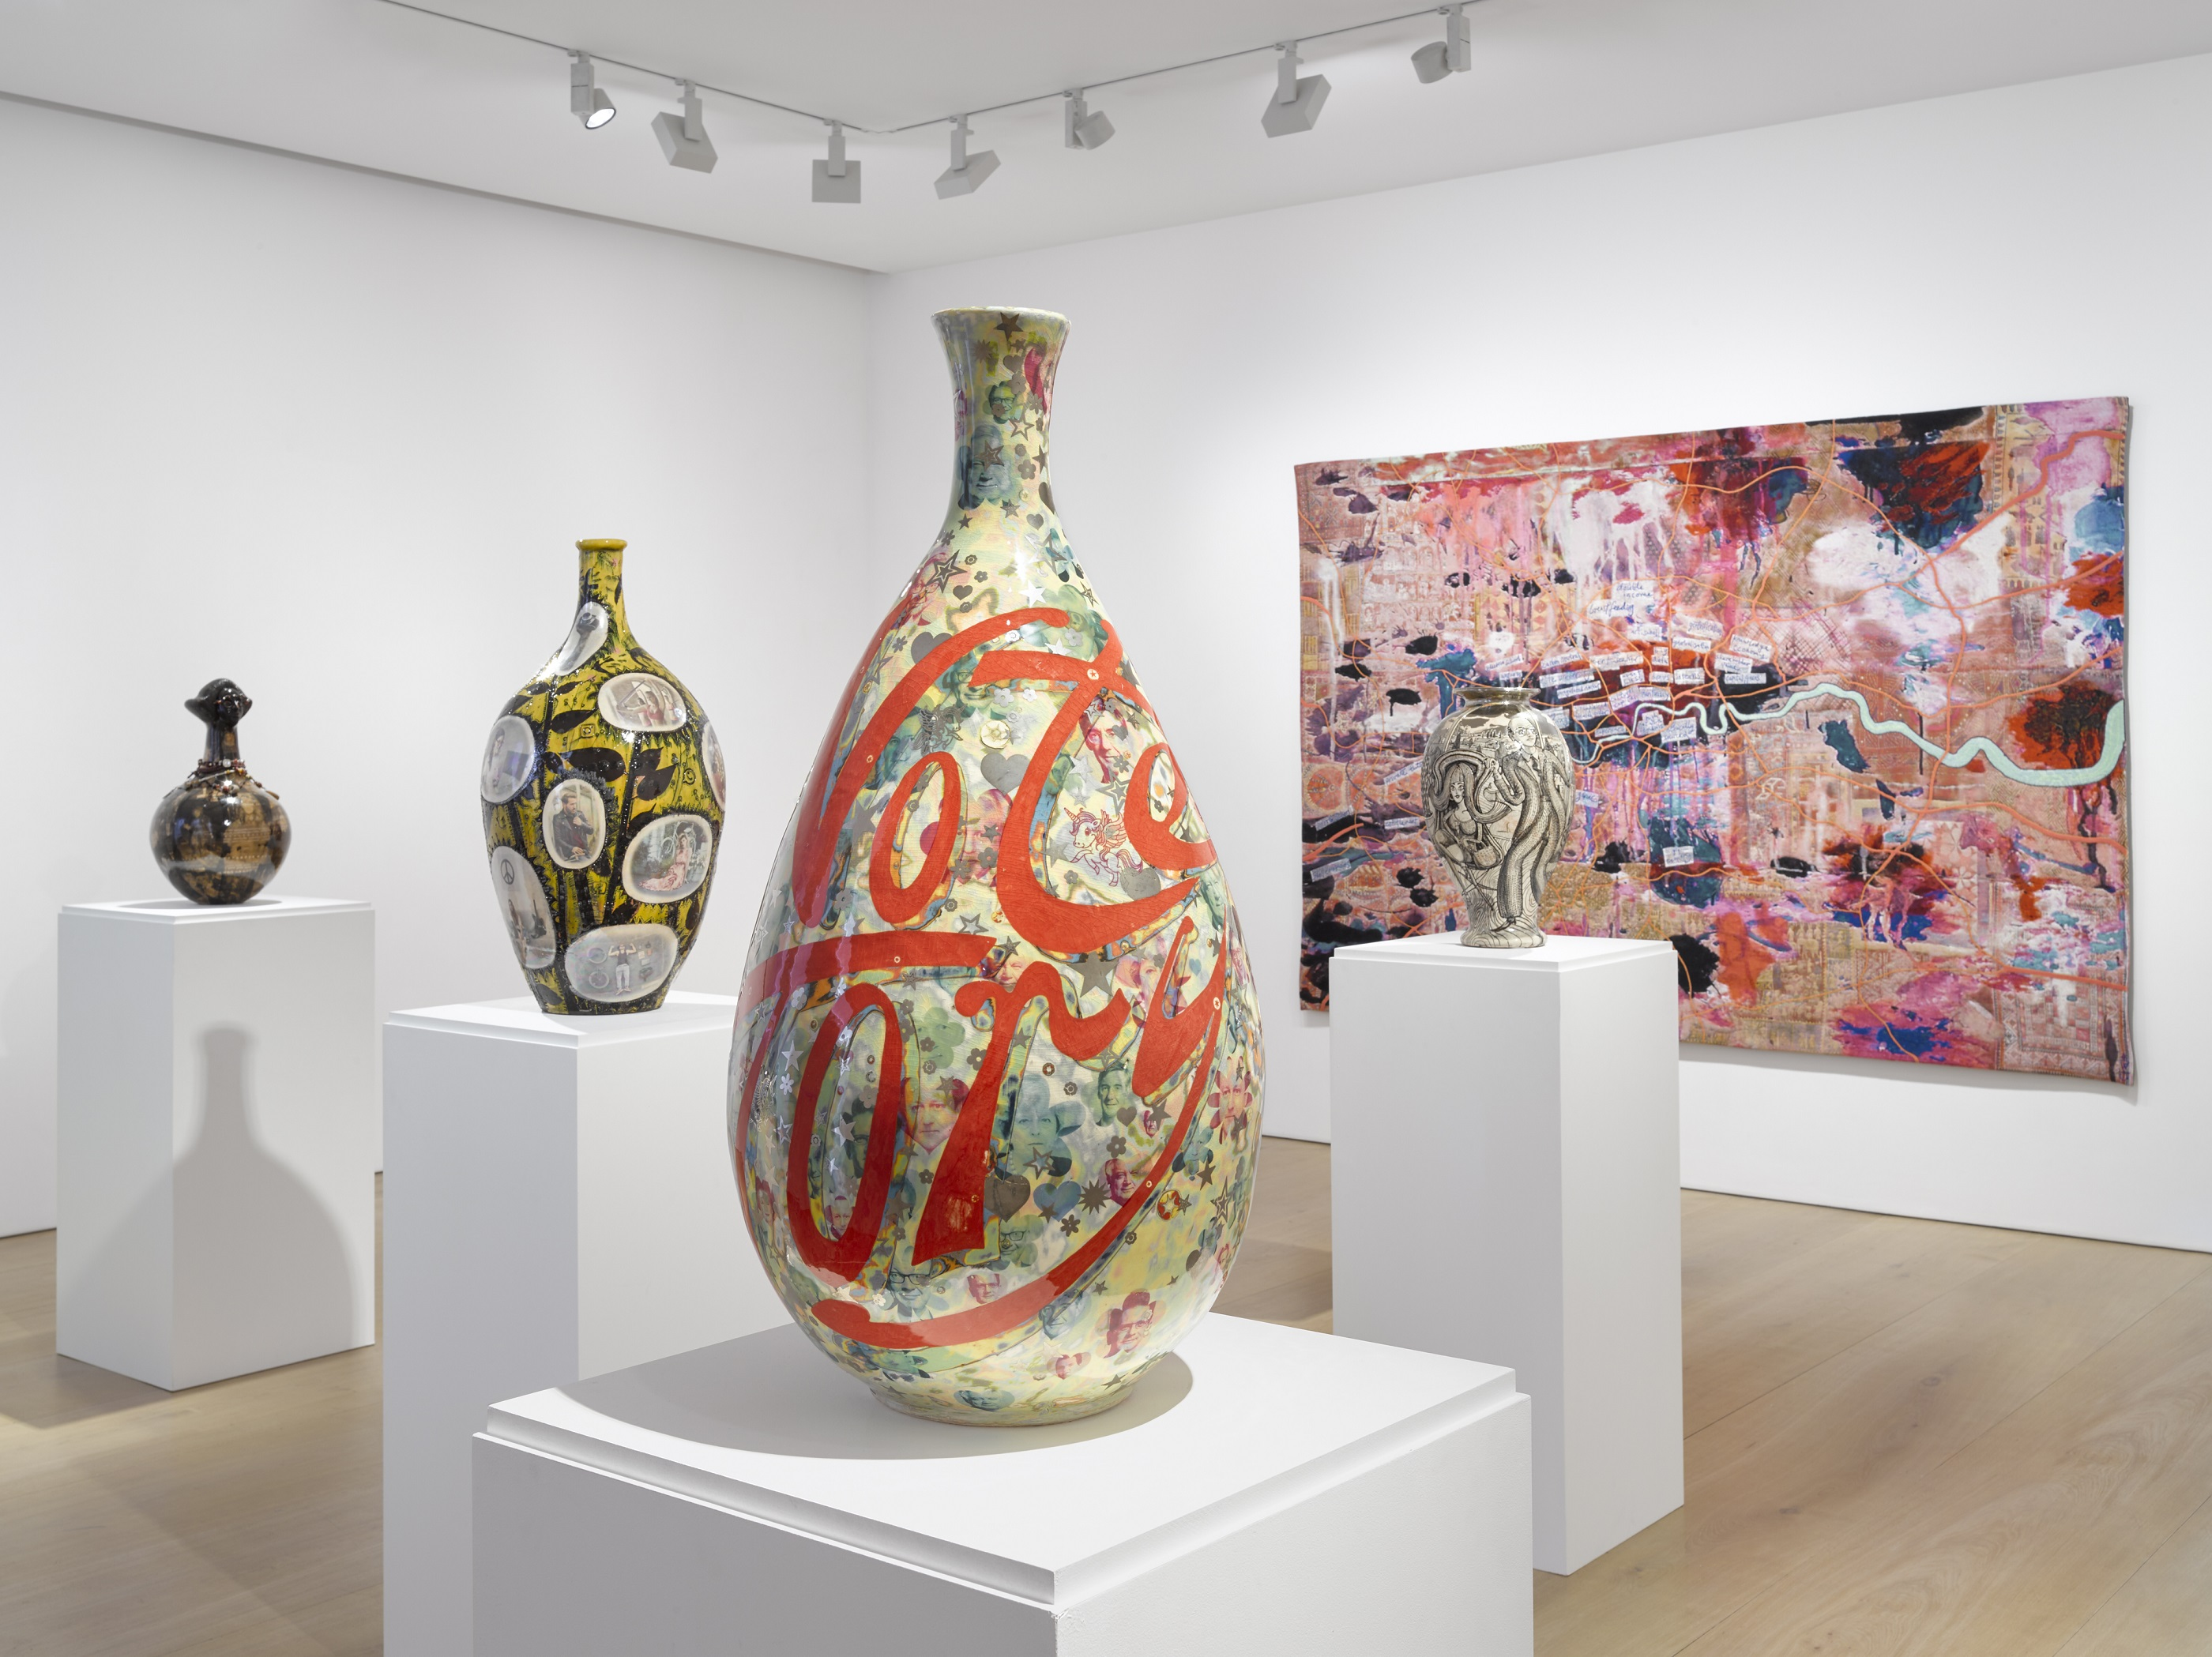 Grayson Perry Installation view, Super Rich Interior Decoration Victoria Miro Mayfair, 14 St George Street, London W1S 1FE 25 September – 20 December 2019 © Grayson Perry/ Courtesy the artist and Victoria Miro, London/Venice